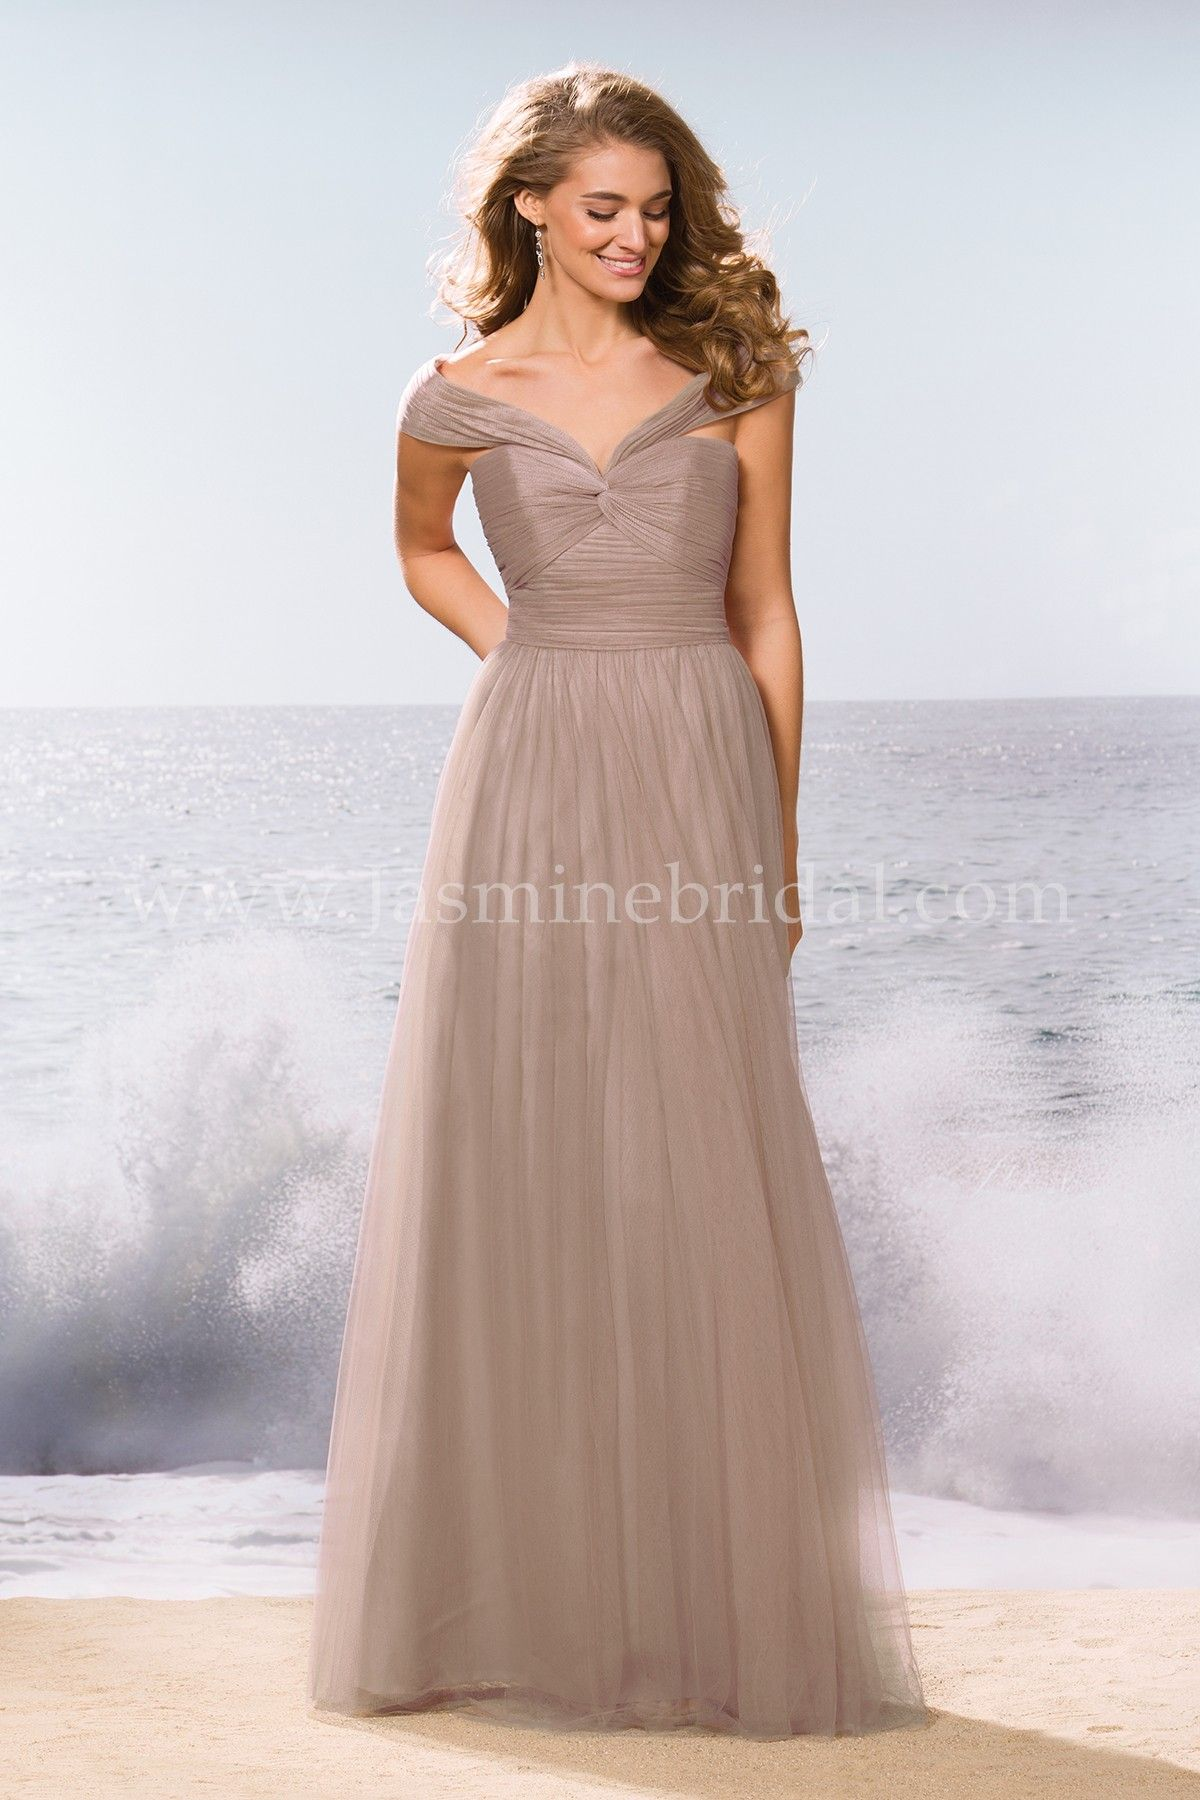 Jasmine bridal bridesmaid dress belsoie style l174063 in sandbar jasmine bridal bridesmaid dress belsoie style l174063 in sandbar a youthful soft tulle dress ombrellifo Choice Image